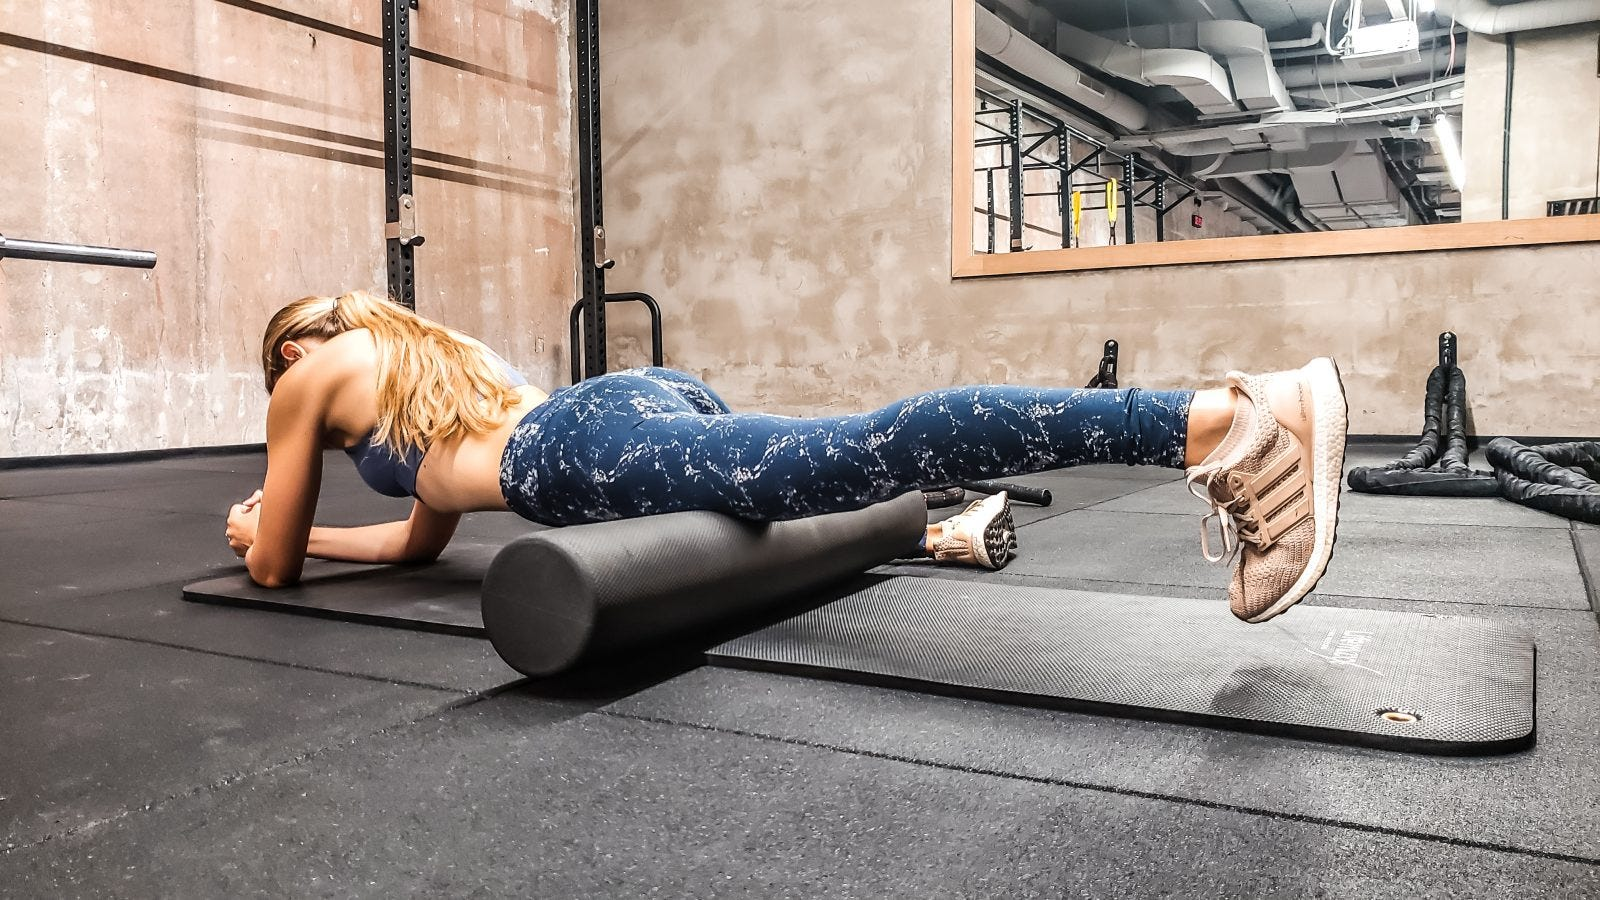 A woman in a gym doing a quad roll with her left leg on a foam roller.